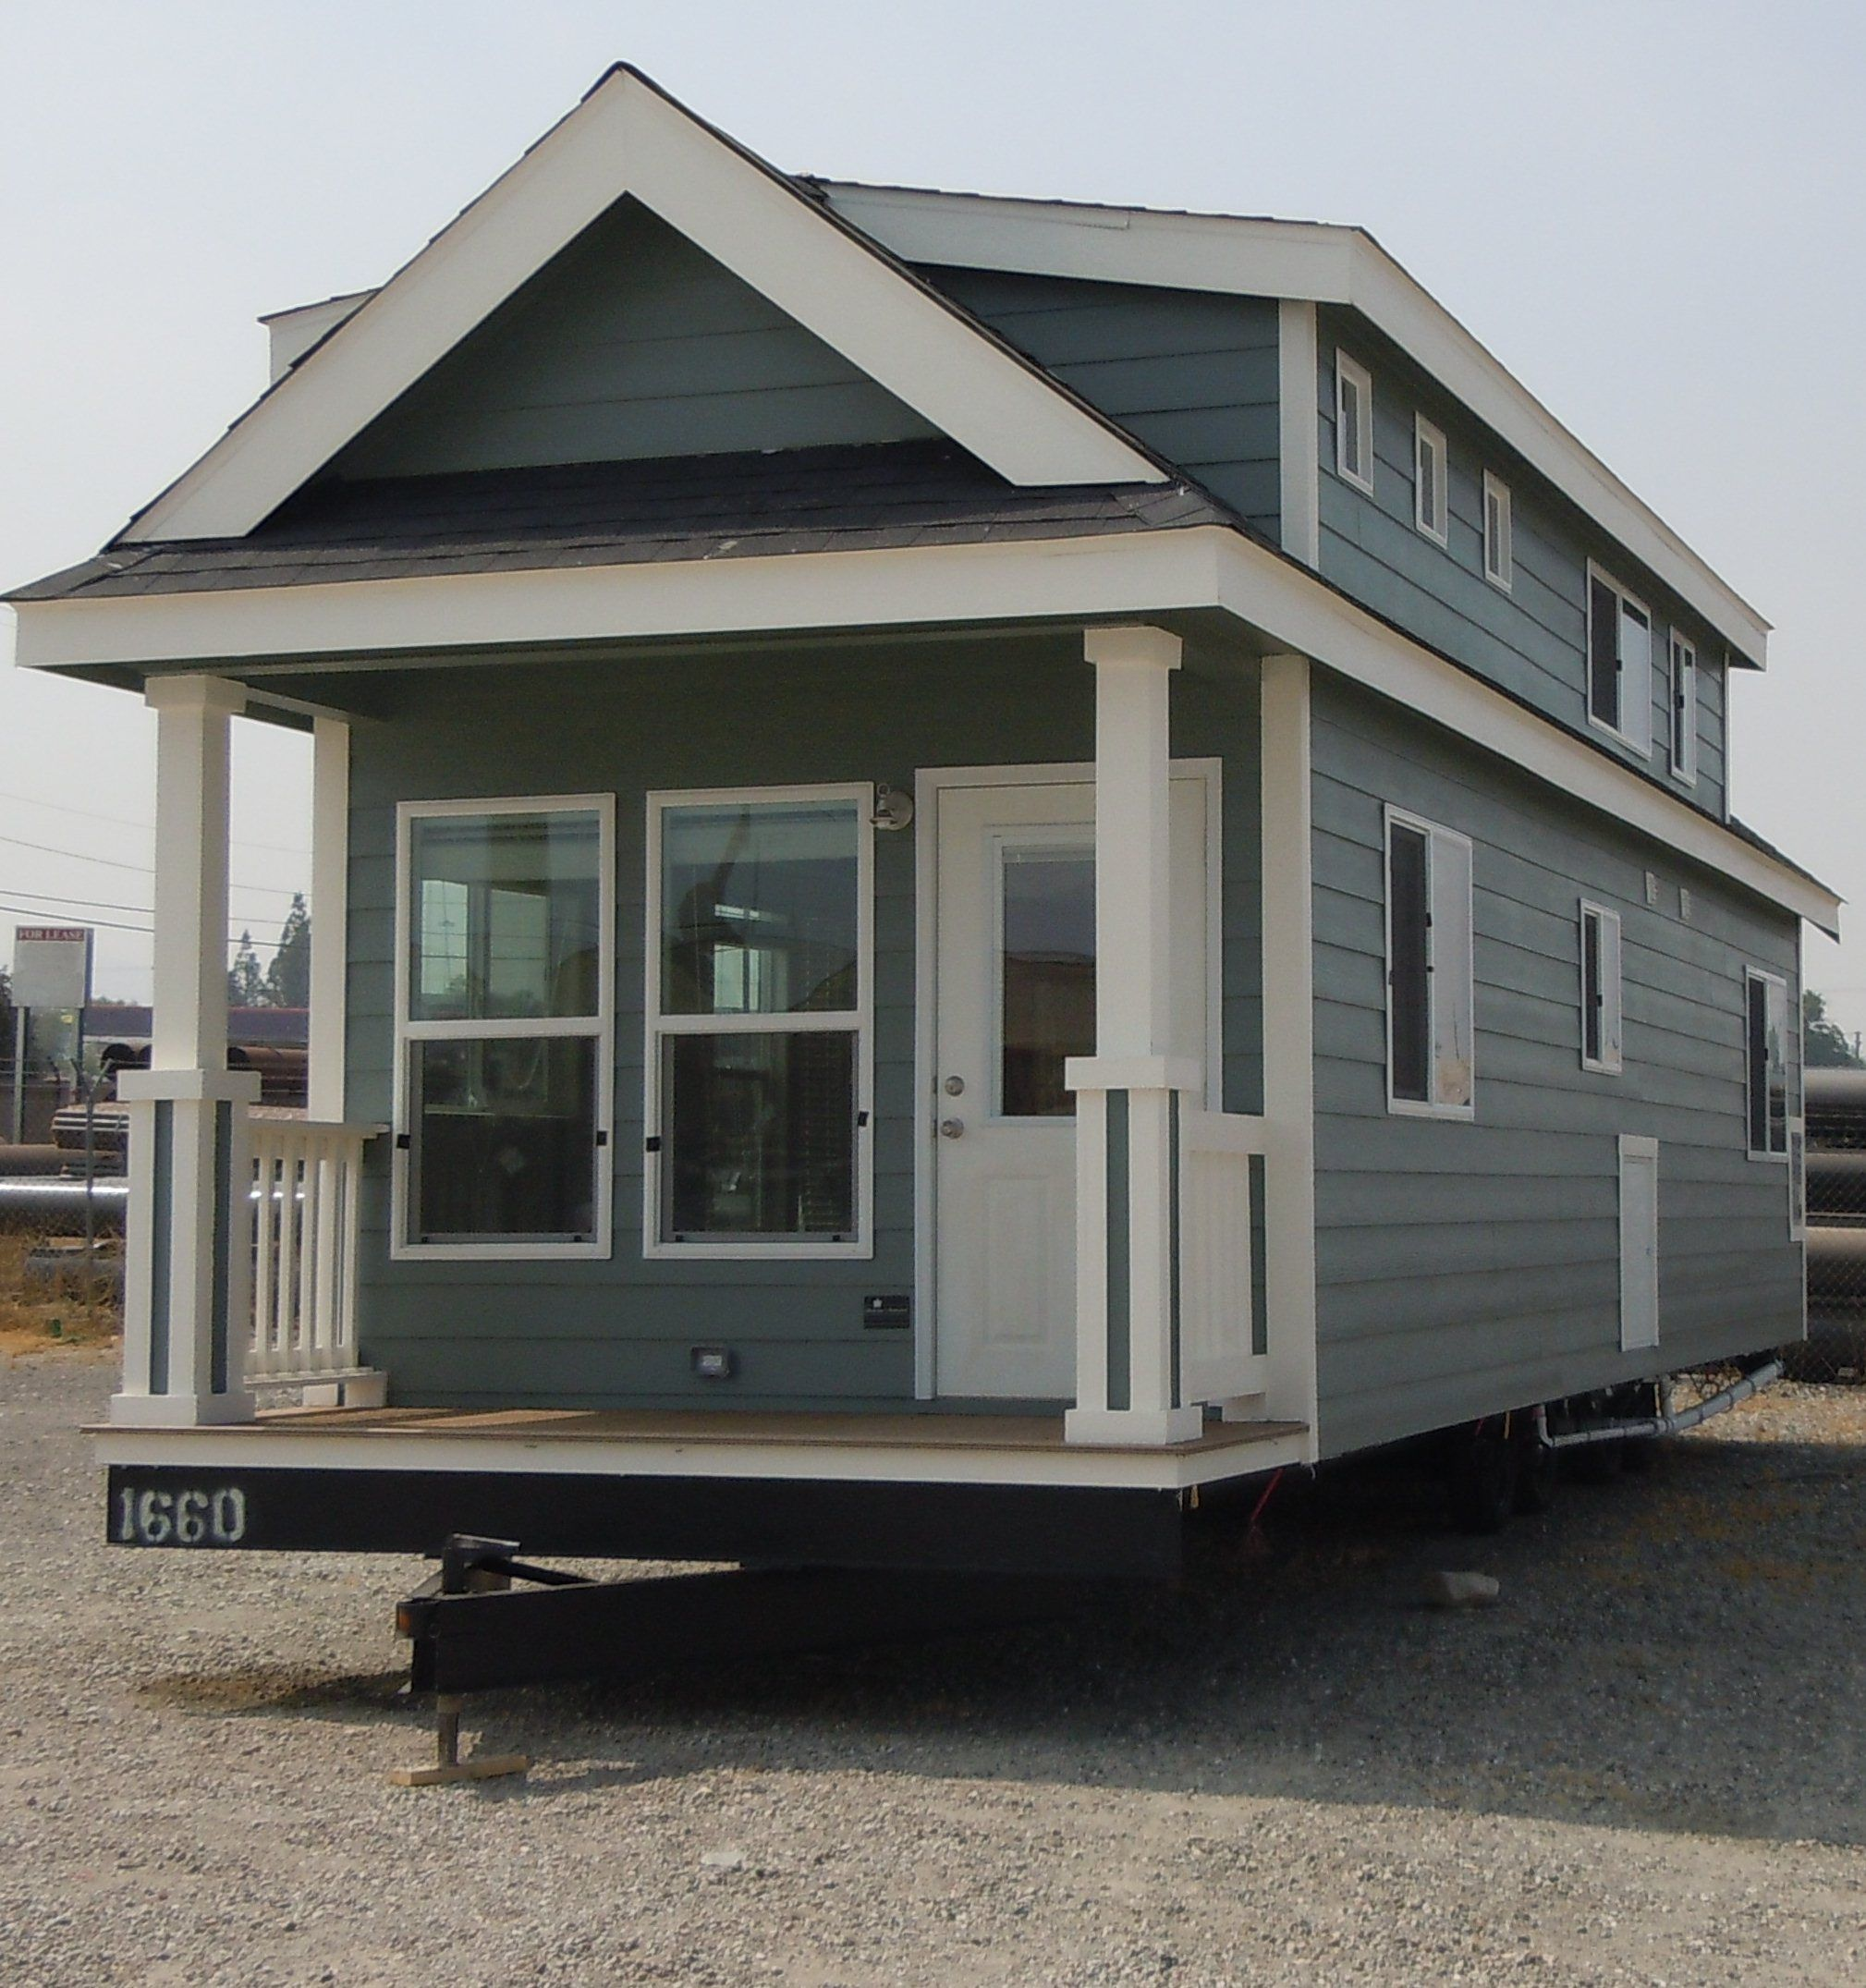 off grid ready to go ok so not a tiny but a very small house big tiny home on wheels short article on park models vs tiny houses